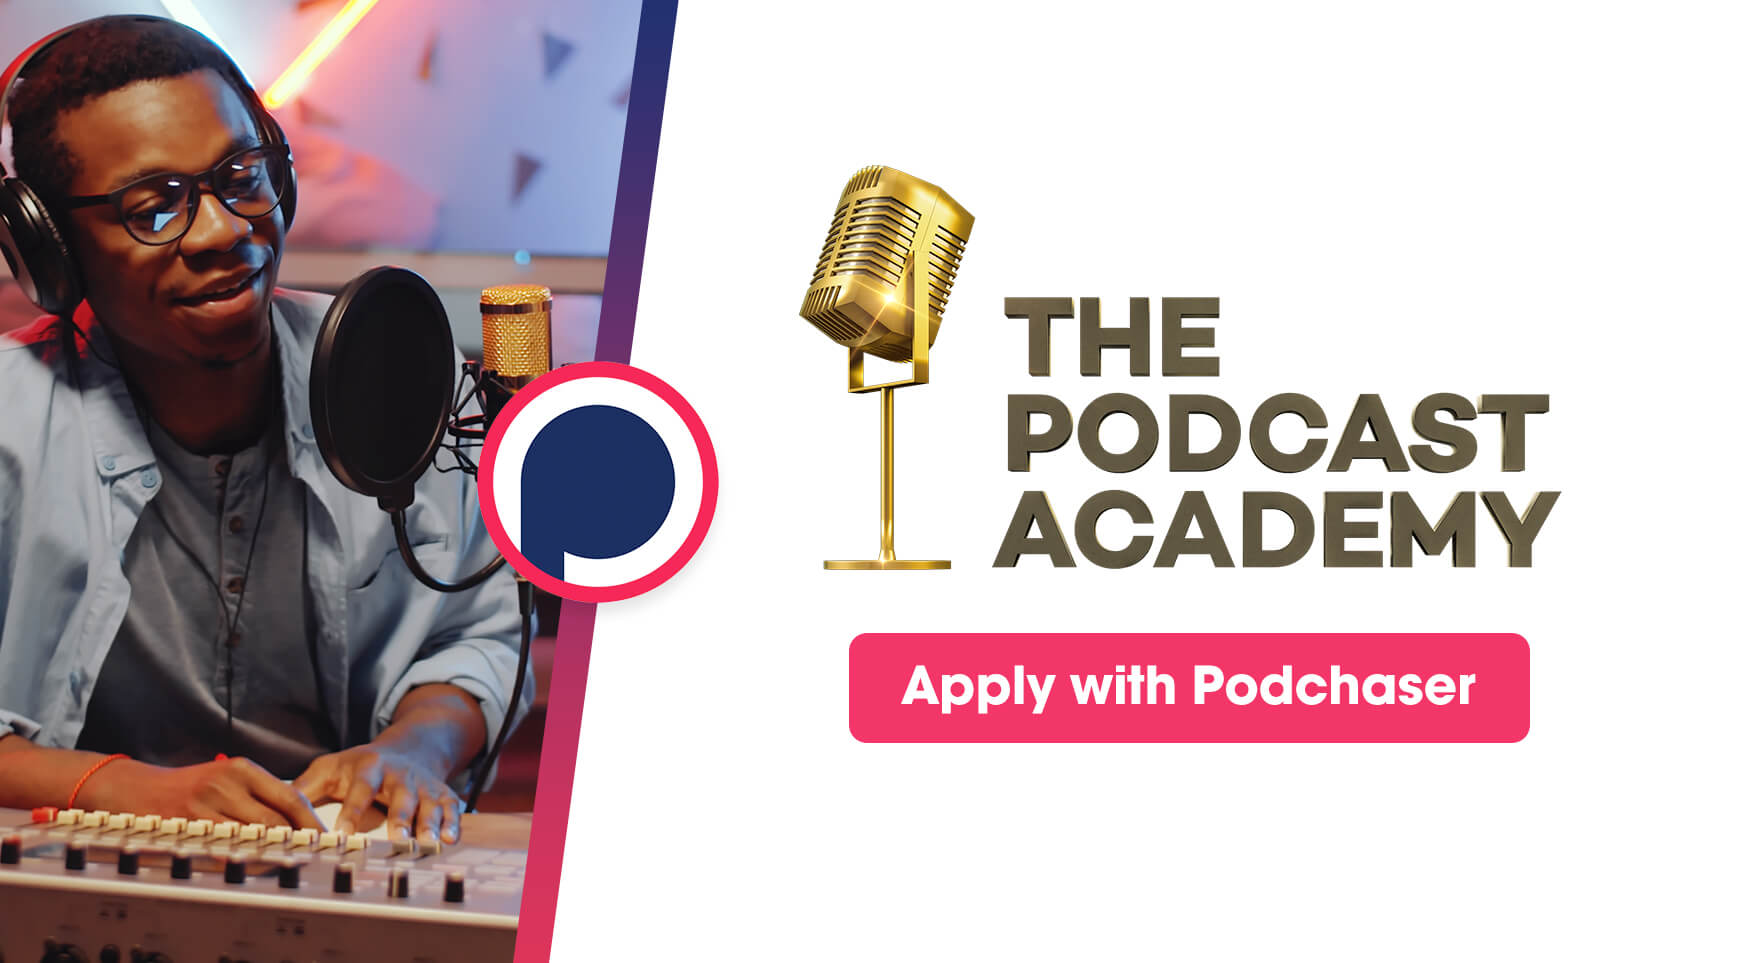 Easily Apply for The Podcast Academy with Your Podchaser Profile